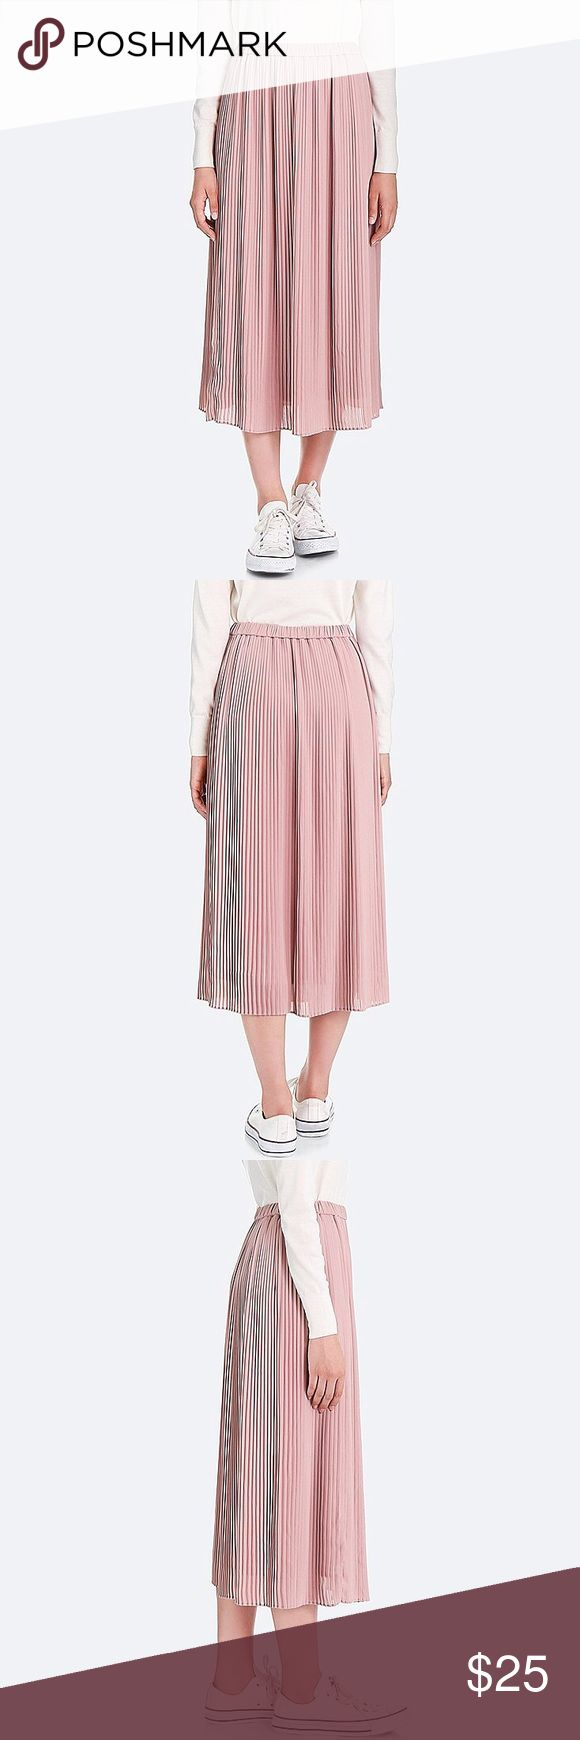 High-Waist Chiffon Pleated Skirt Beautiful Light and airy skirt with elastic waistband. Available in rose pink and black! Both size M. Waist is 28-29in. Length is 33.5in NWT! Uniqlo Skirts Maxi